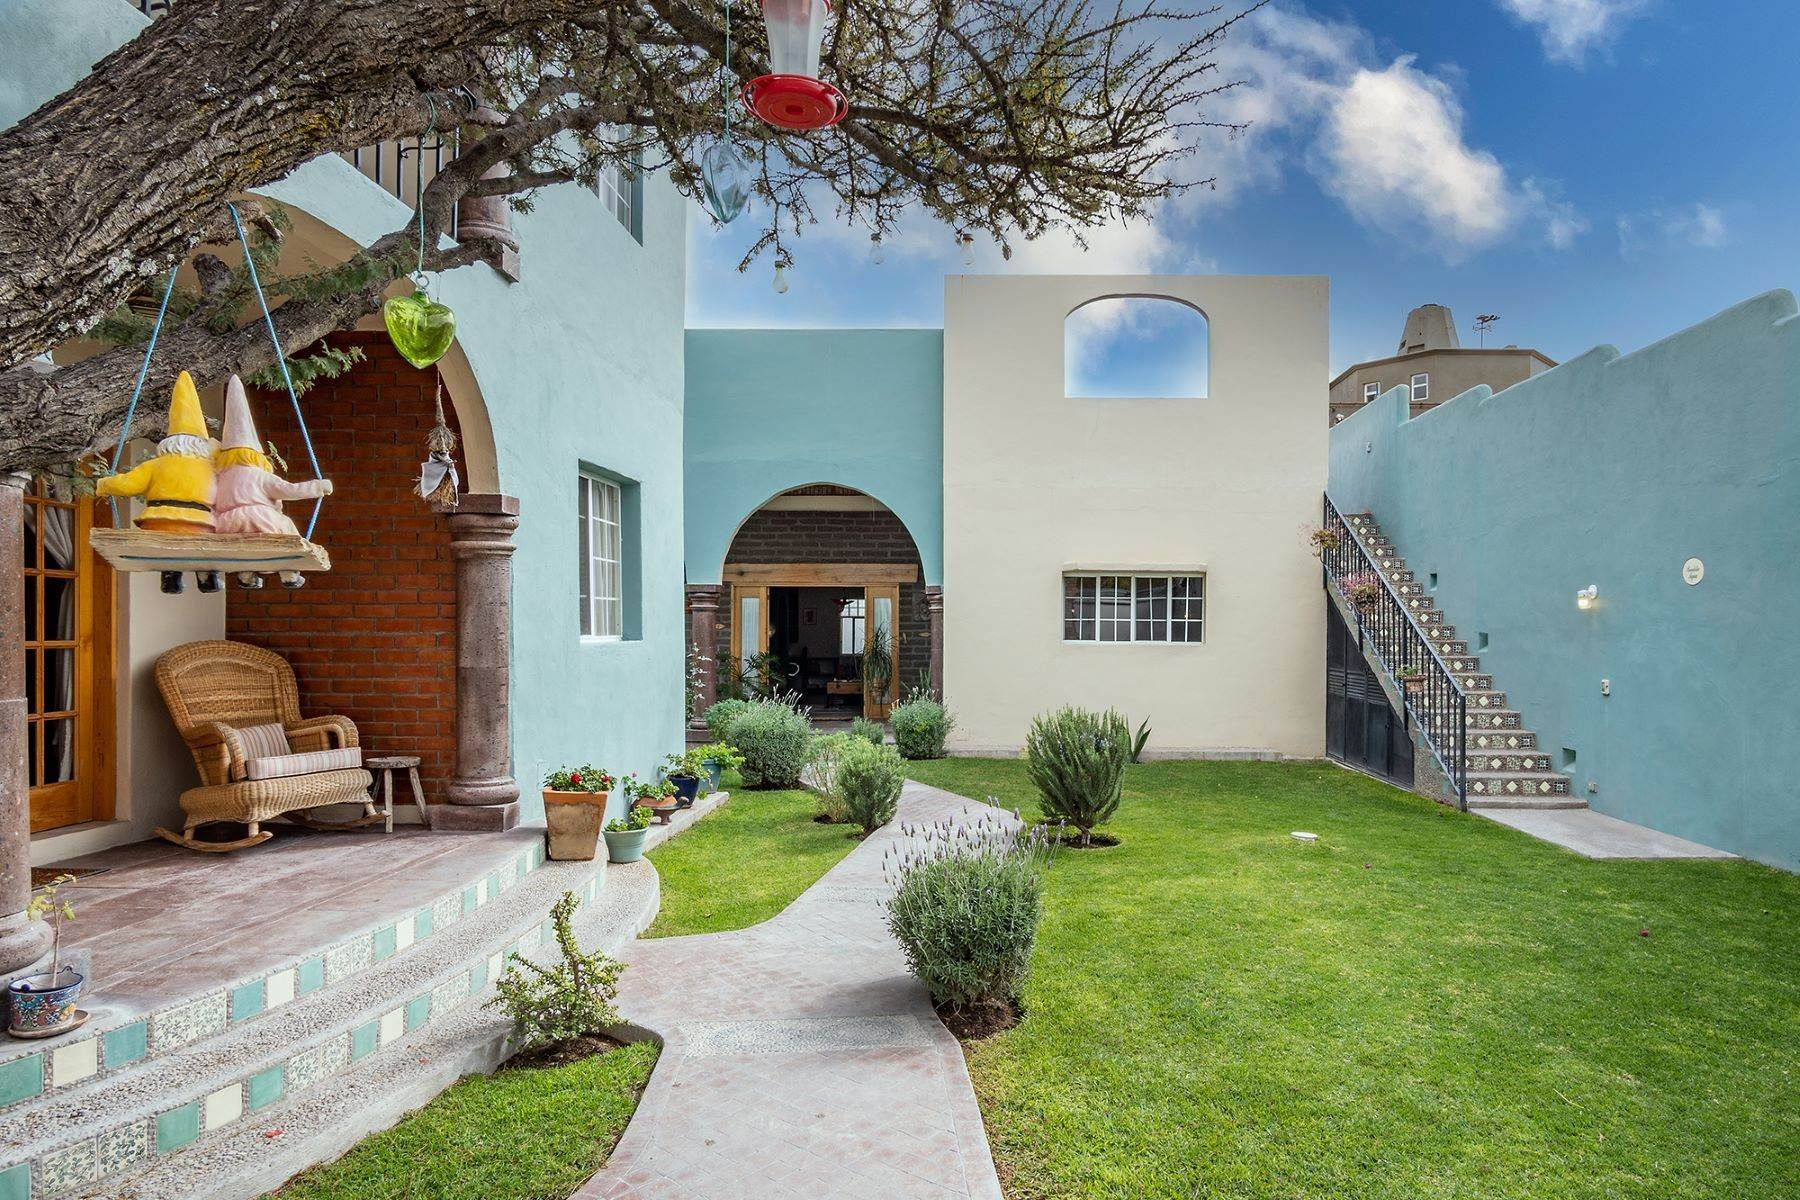 Single Family Homes for Sale at Casa Jardin Fray Juan de San Miguel San Miguel De Allende, Guanajuato 37790 Mexico